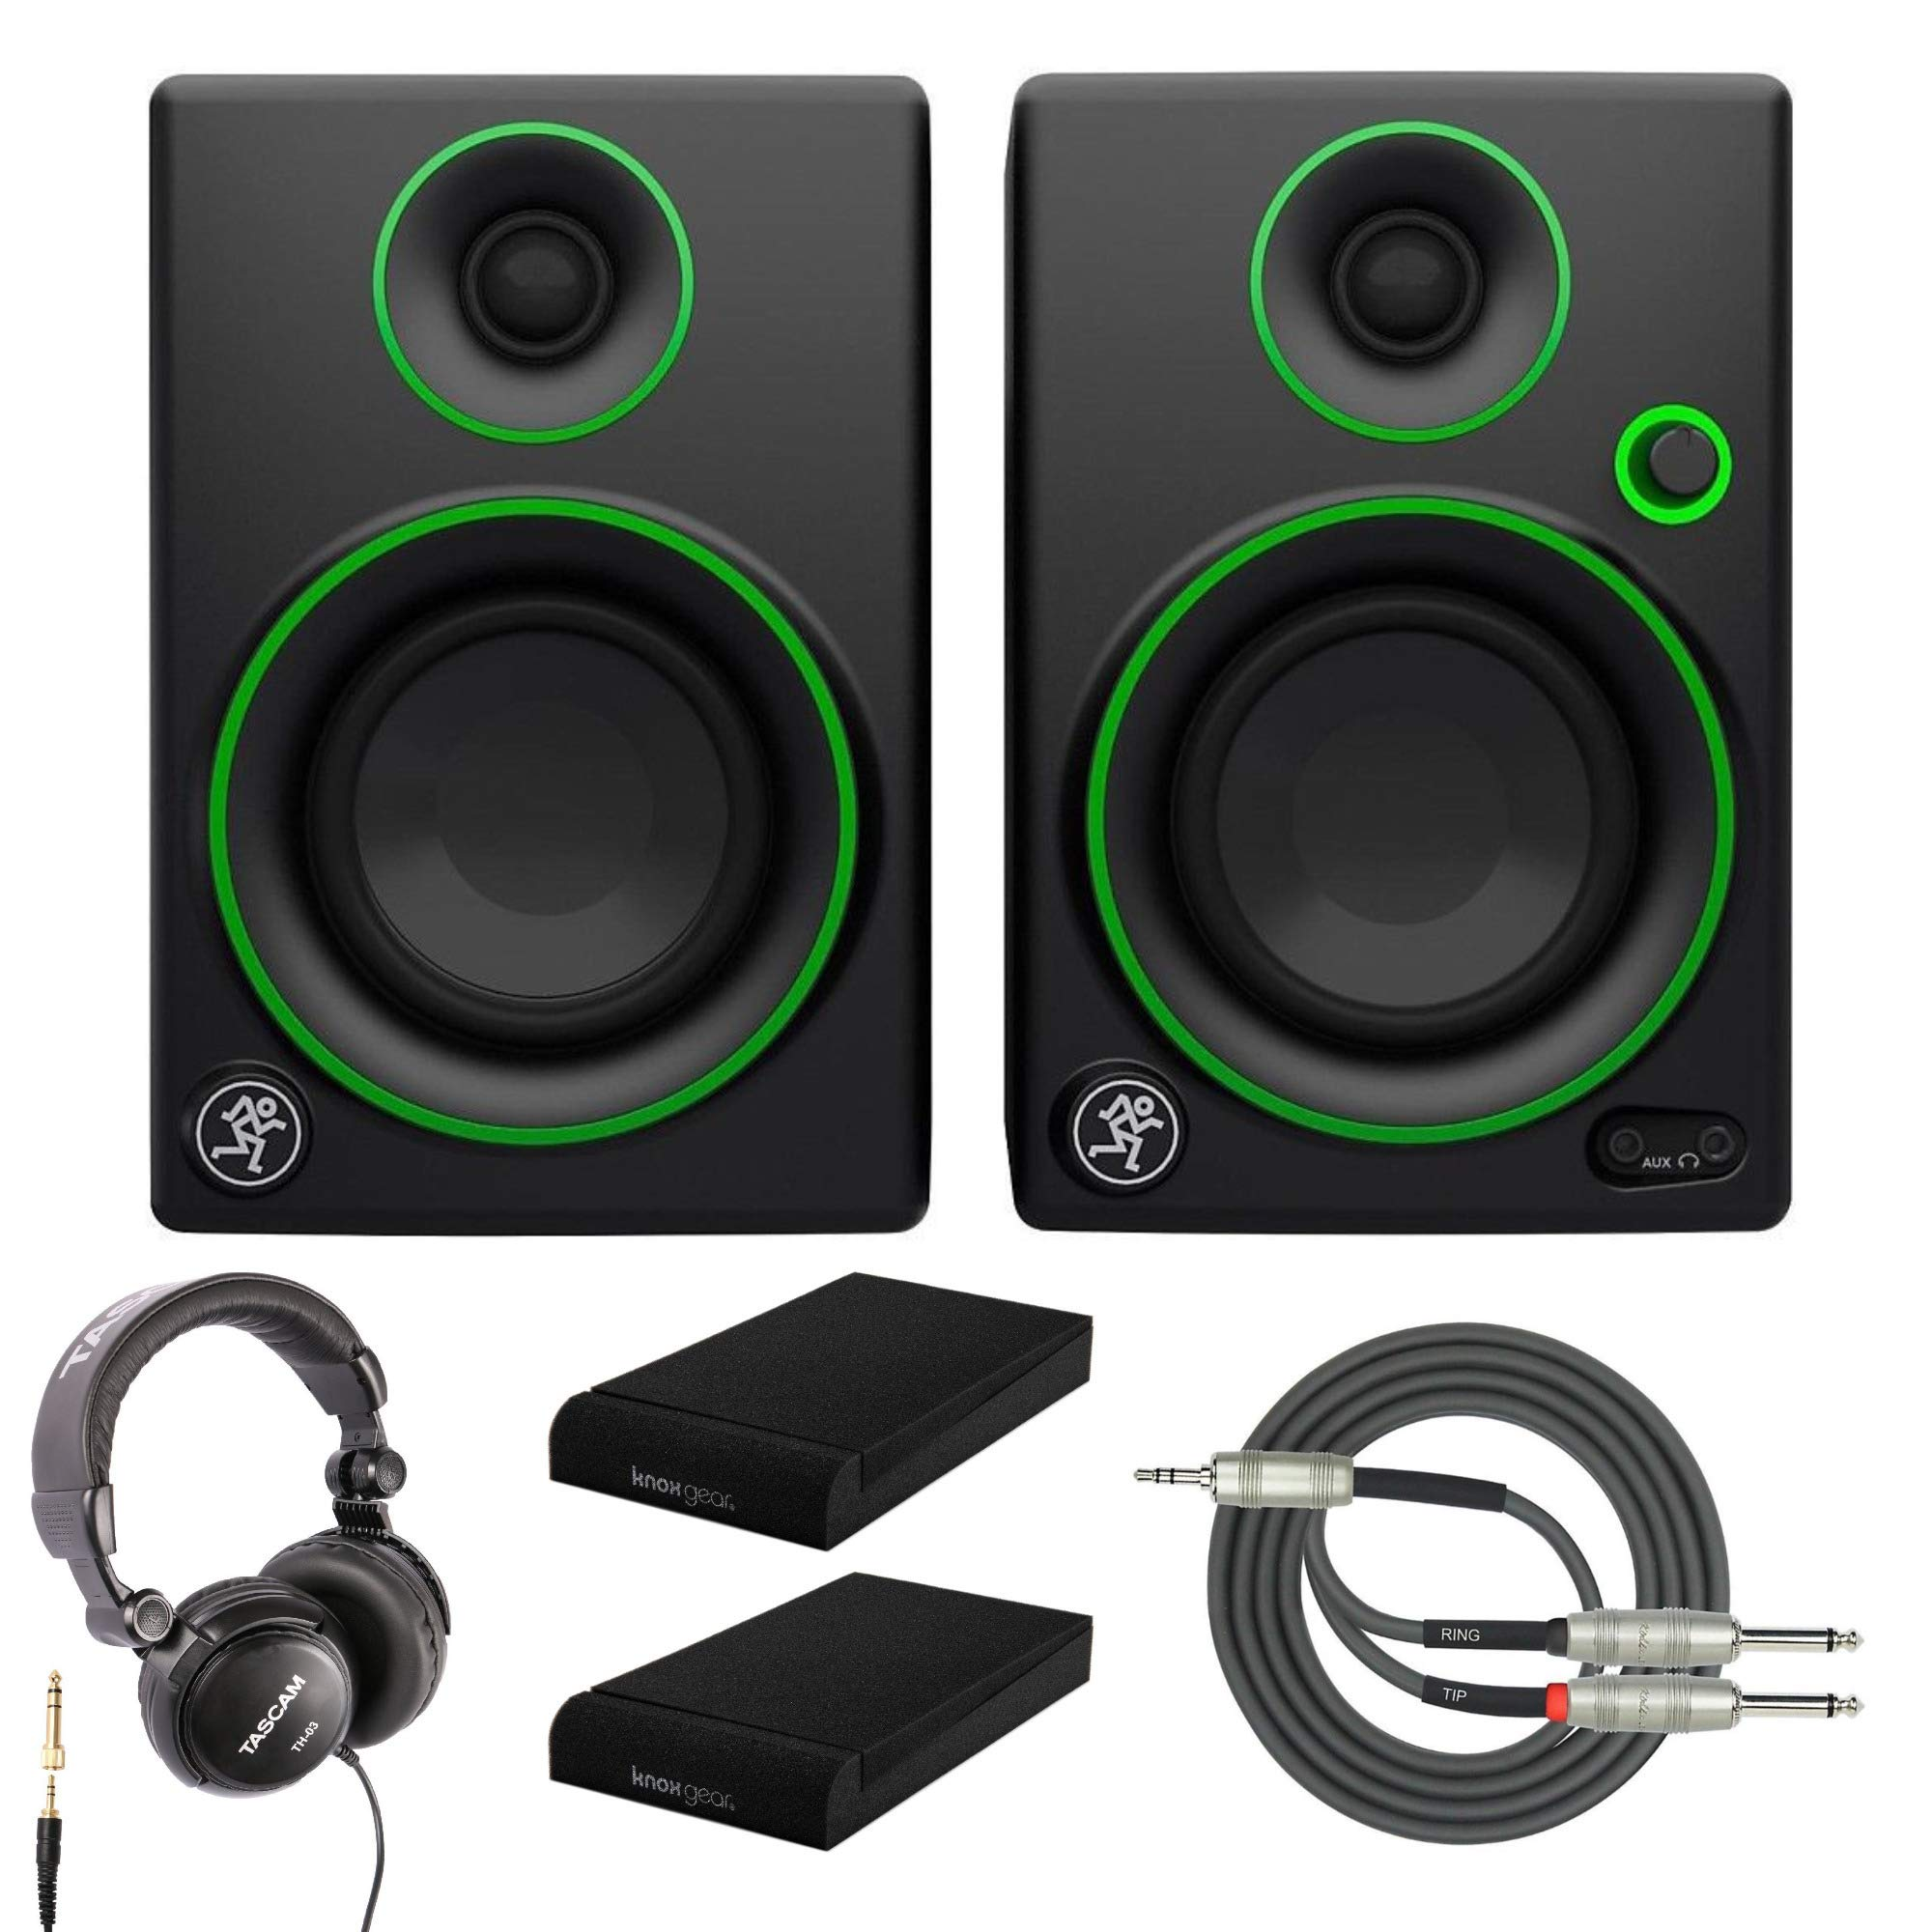 Mackie CR3 3'' Multimedia Monitors with Studio Headphones, Breakout Cable and Knox Gear Isolation Pads